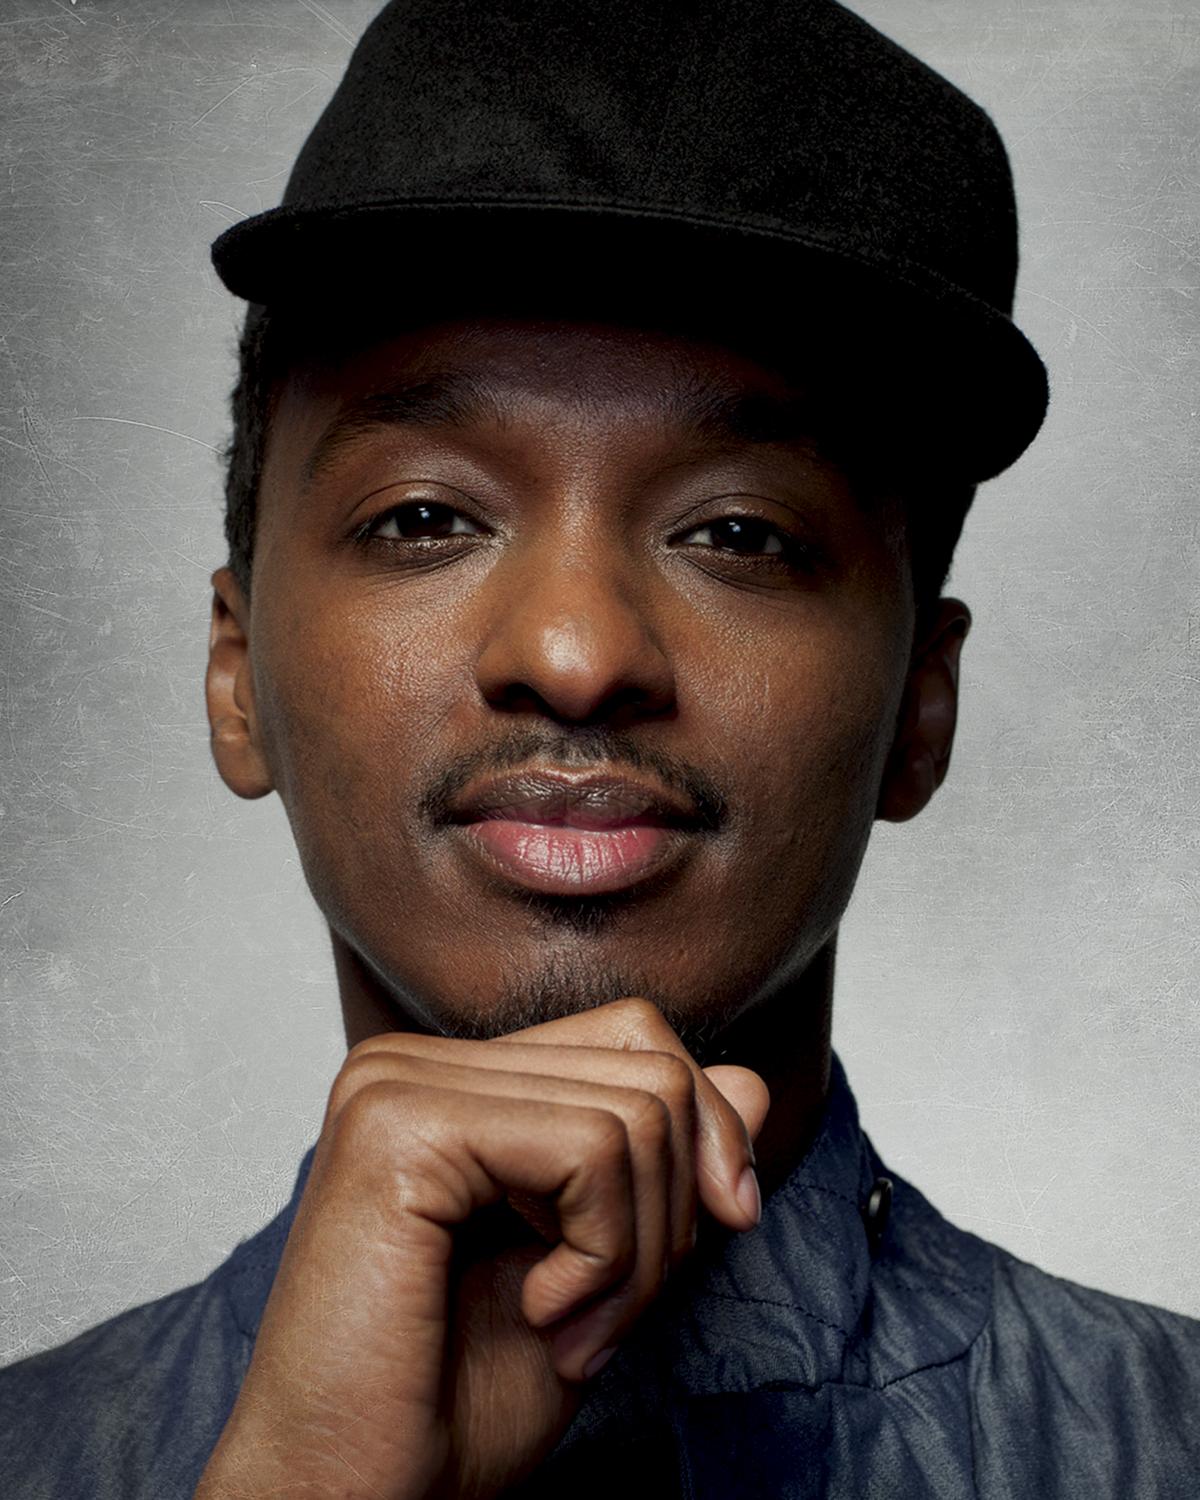 knaan author photo